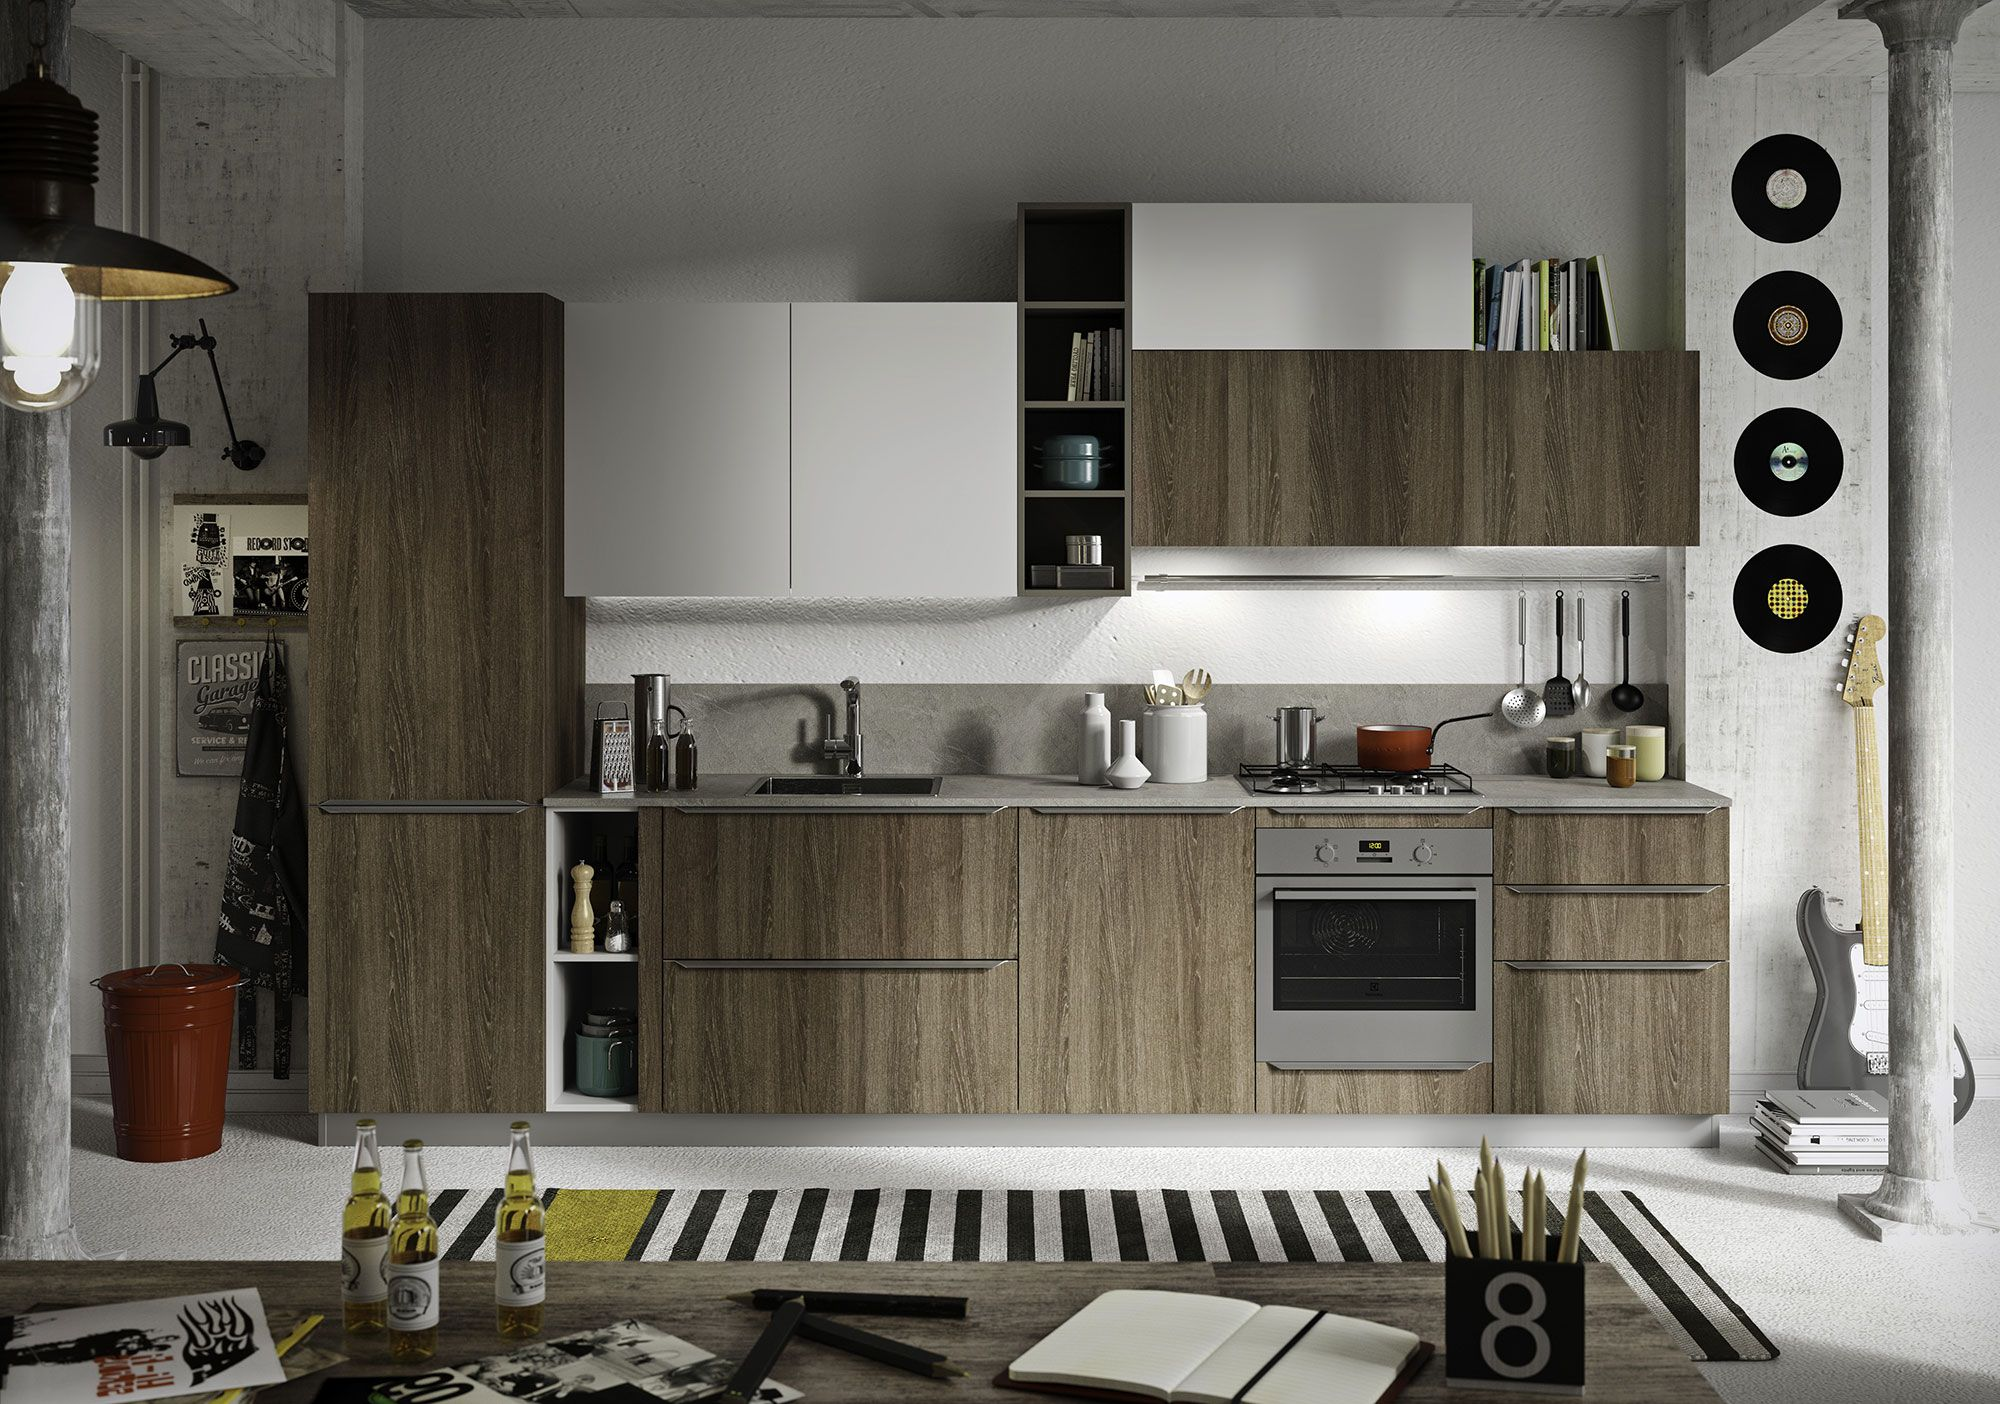 Contemporary kitchen #Feel with doors in Boston brown and soft ...